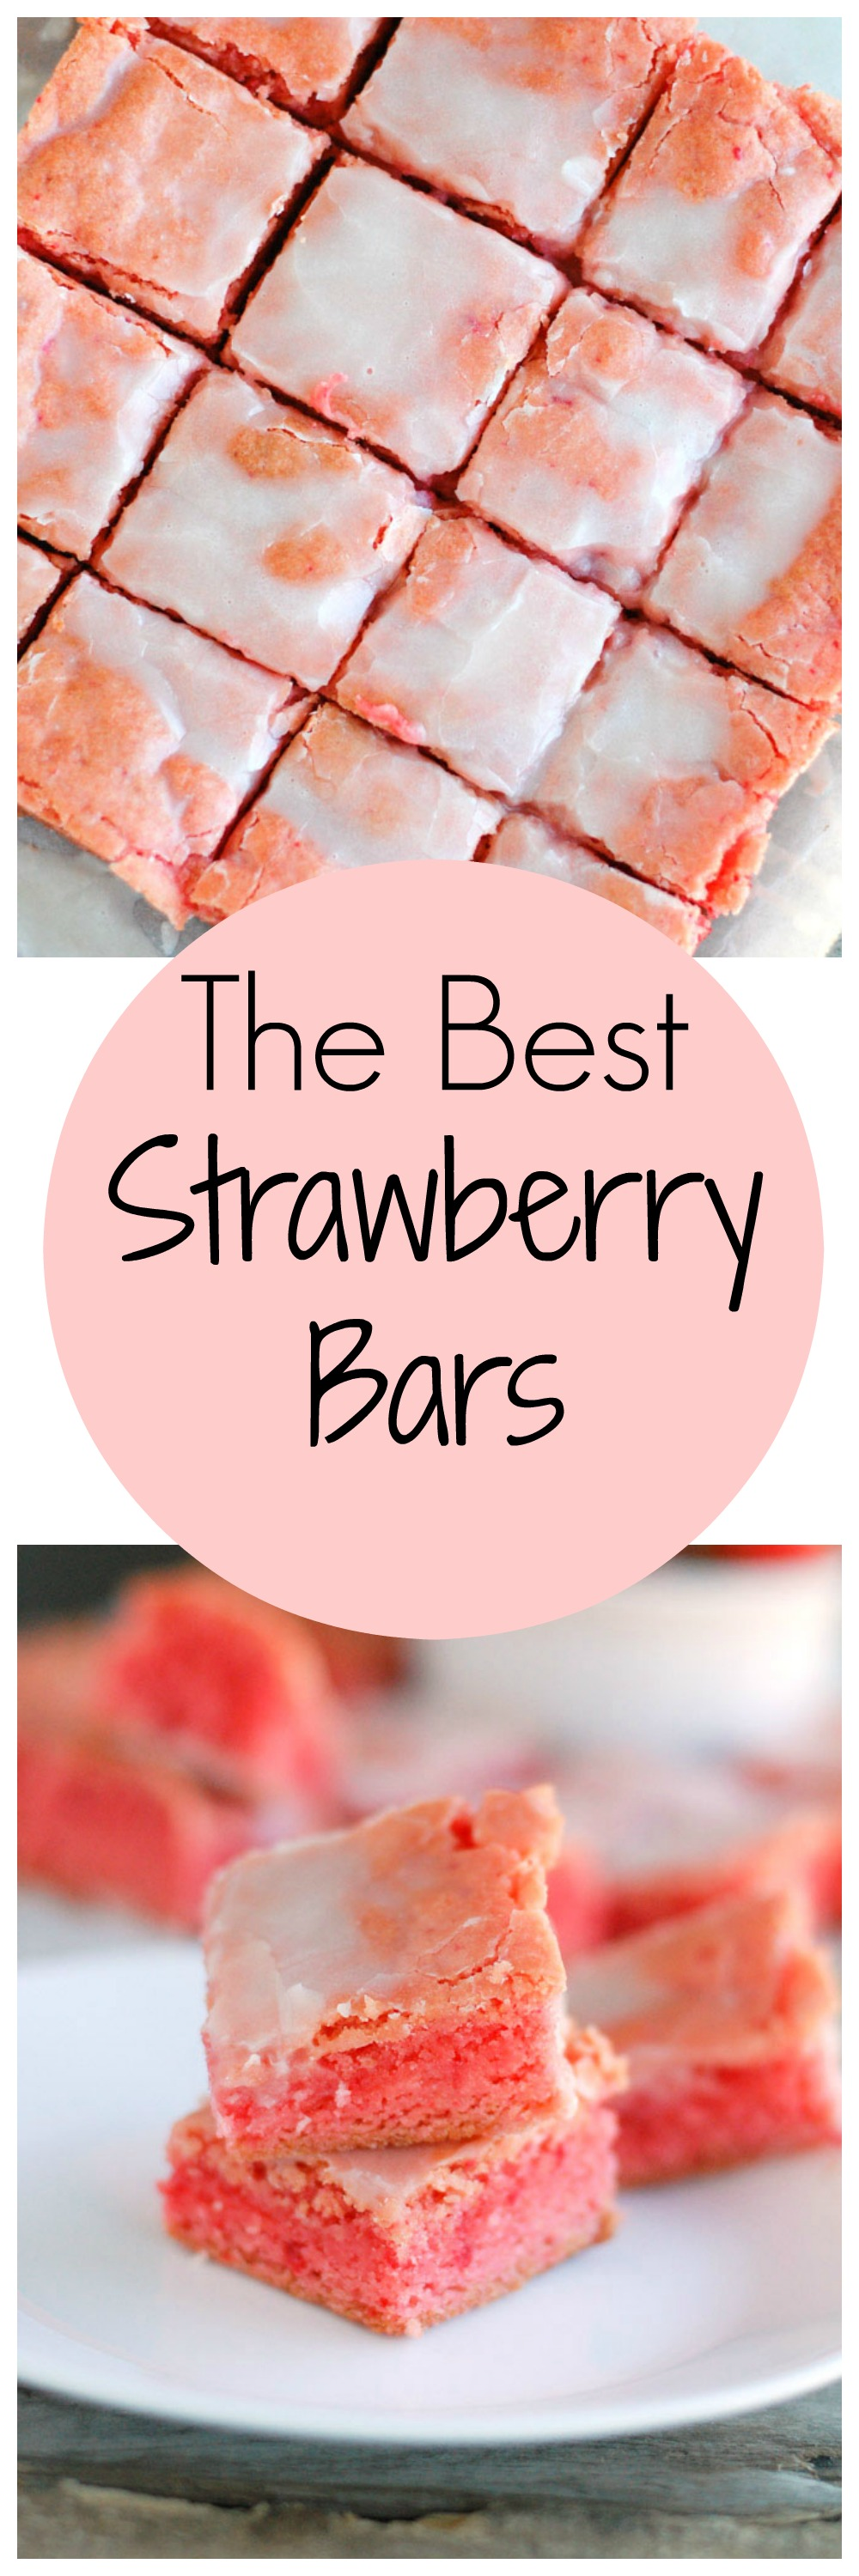 The best strawberry bars are perfect for parties and picnics. Only a few ingredients, make these super simple to make.